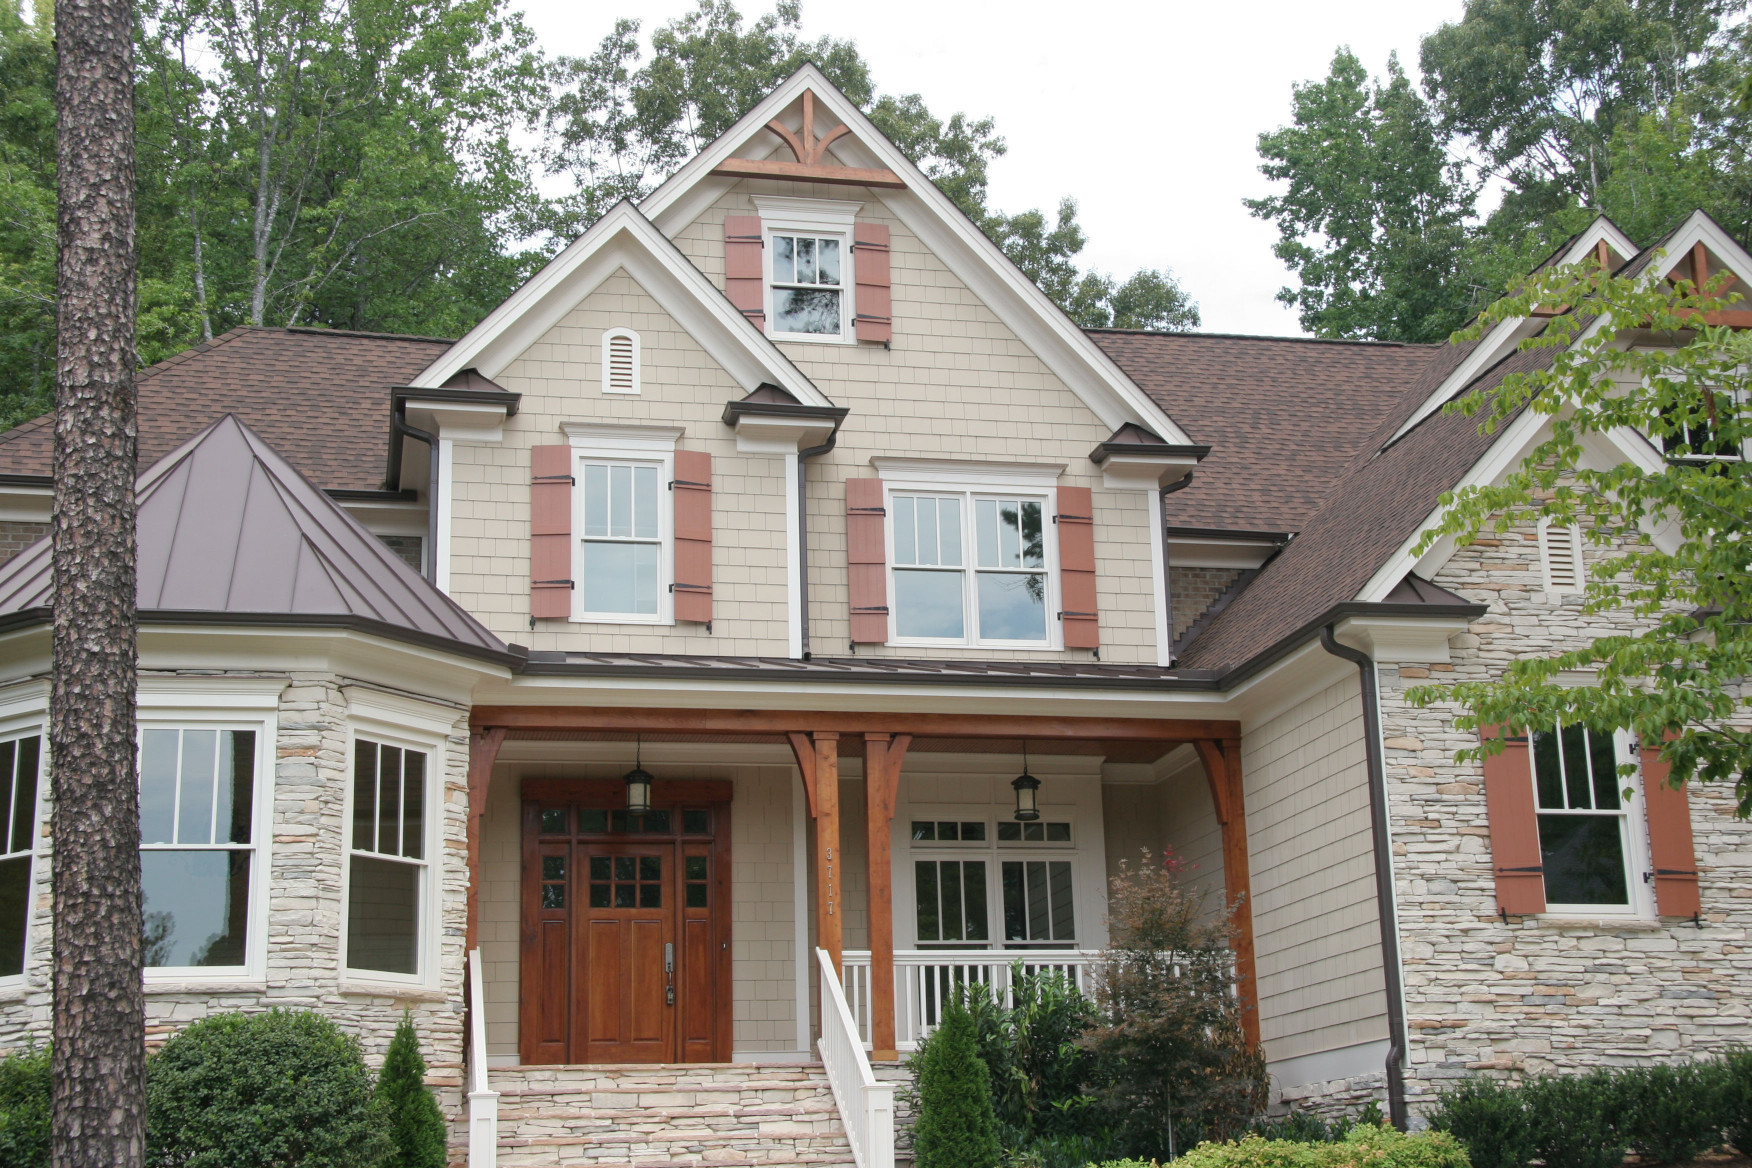 The wood posts, wood braces, and wood gable brackets on this house are western red cedar.